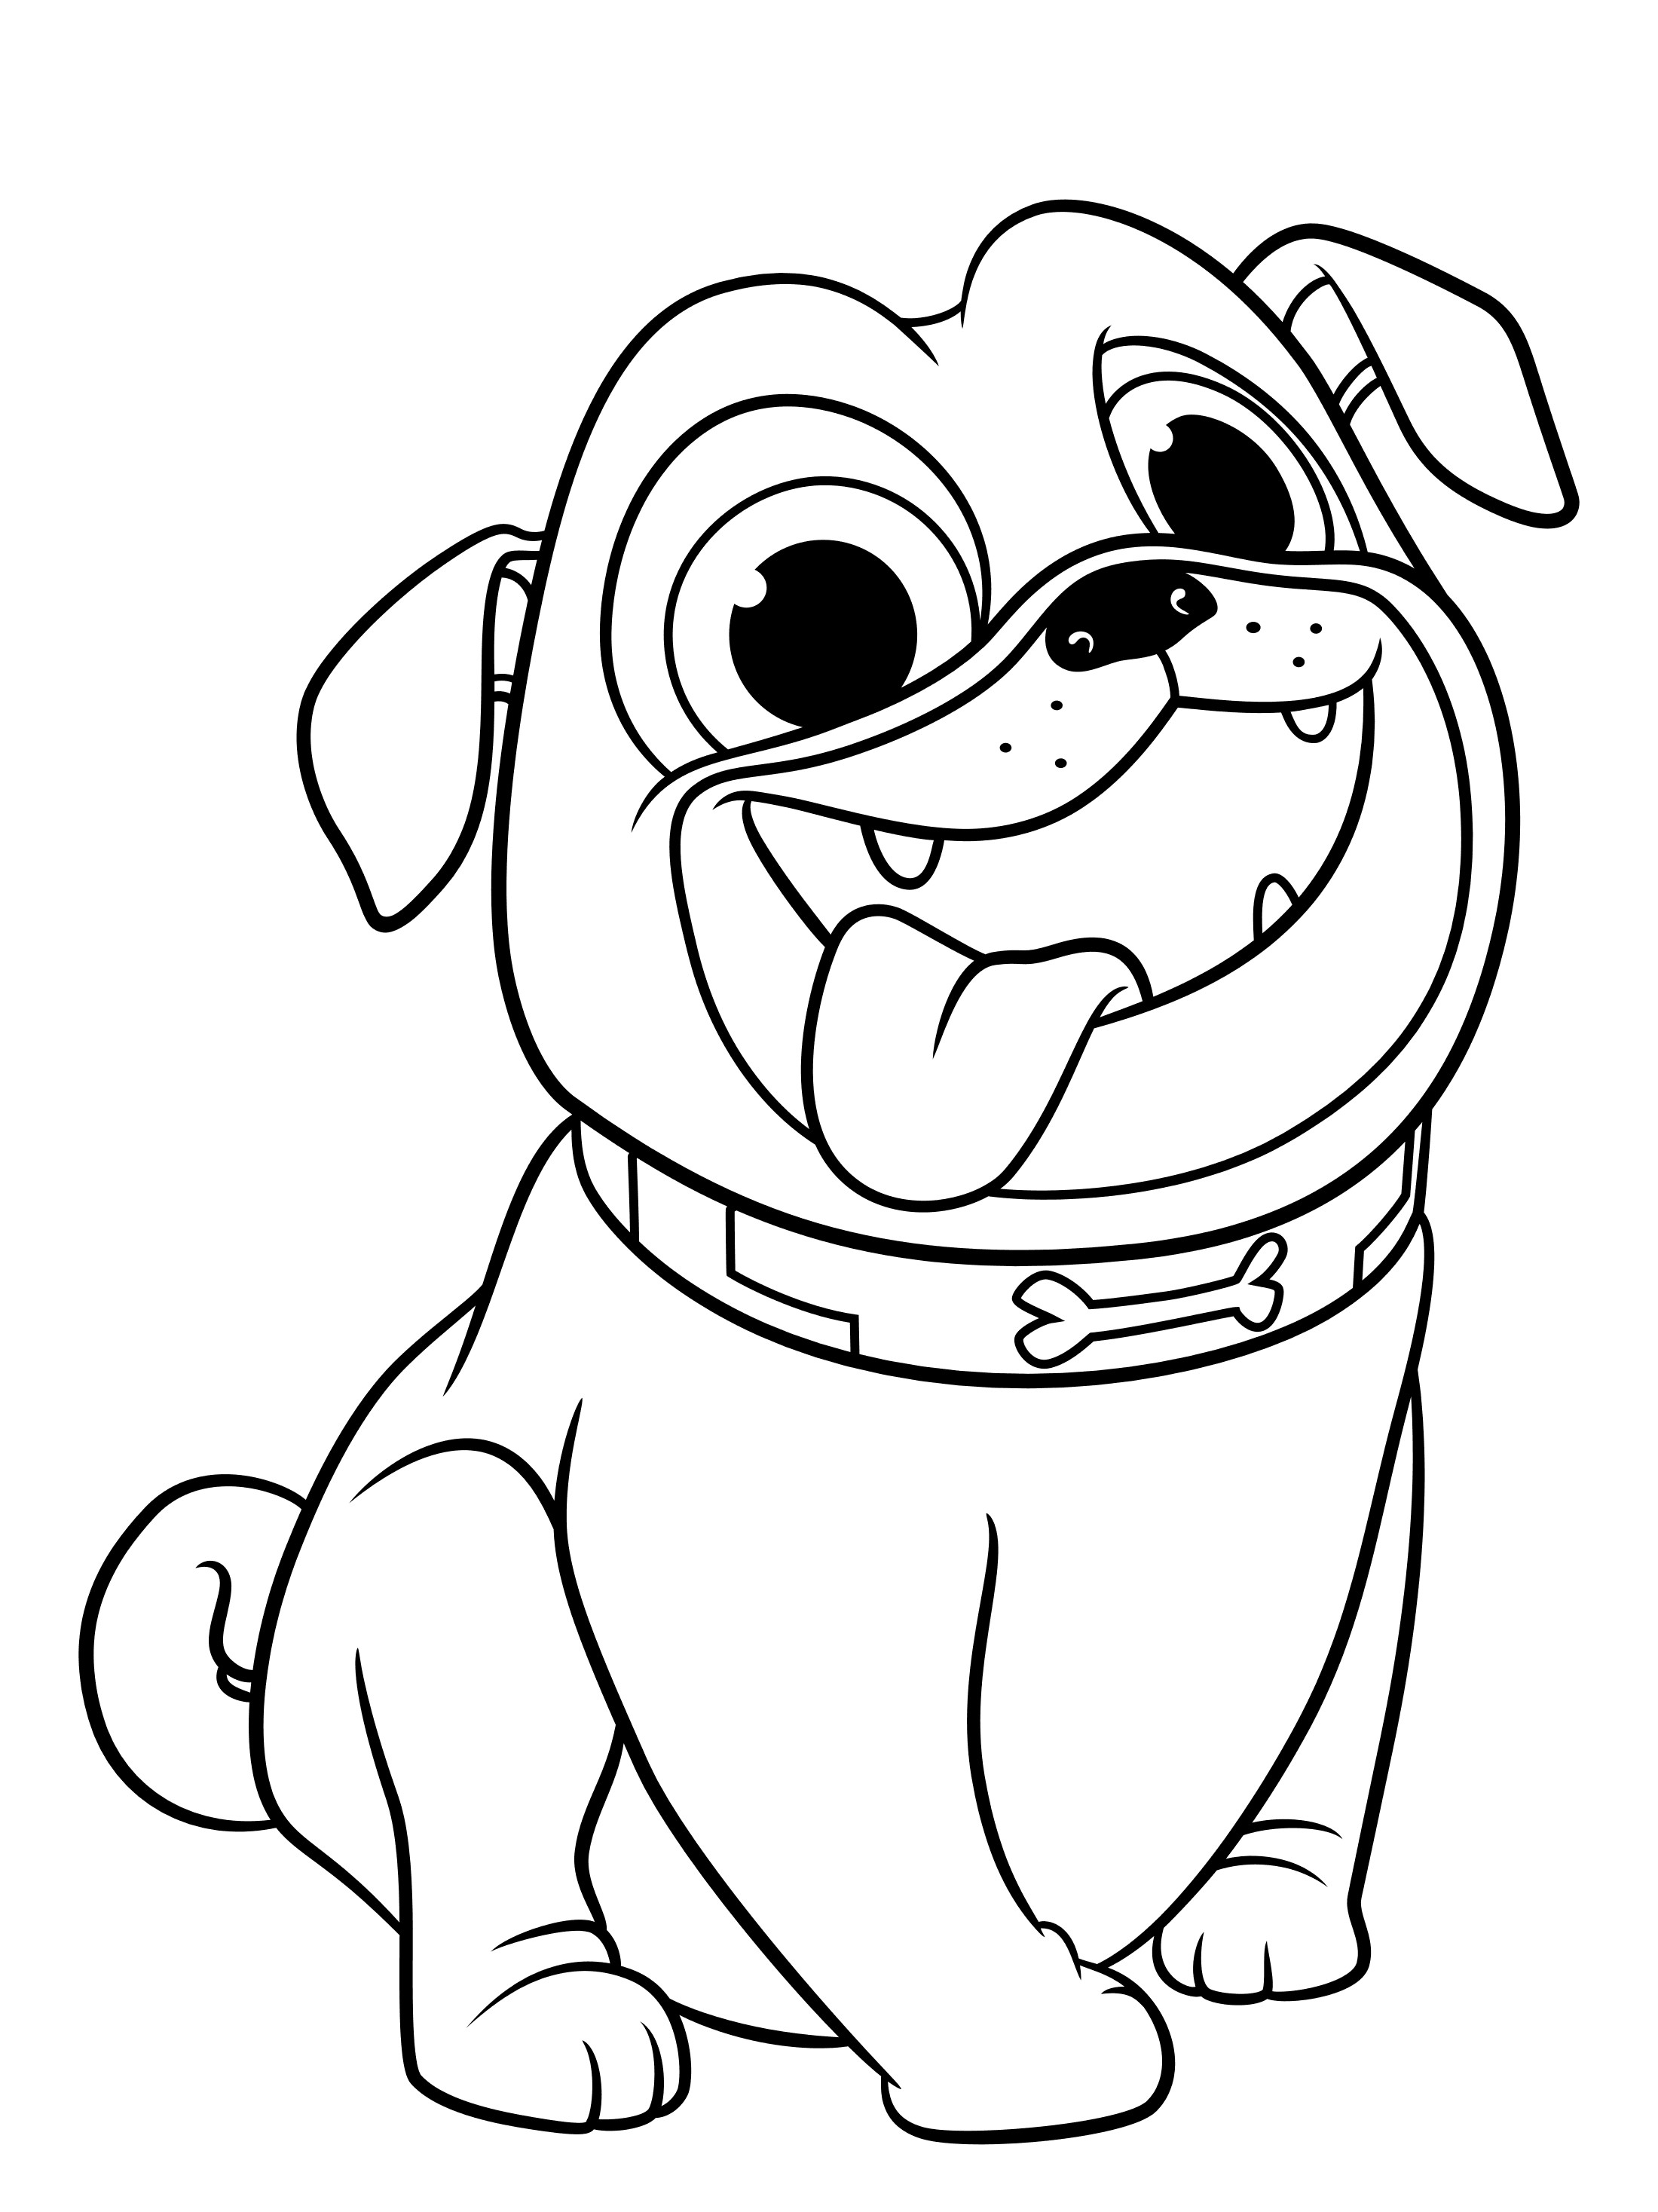 pug coloring pages pug coloring pages printable coloring home pug pages coloring